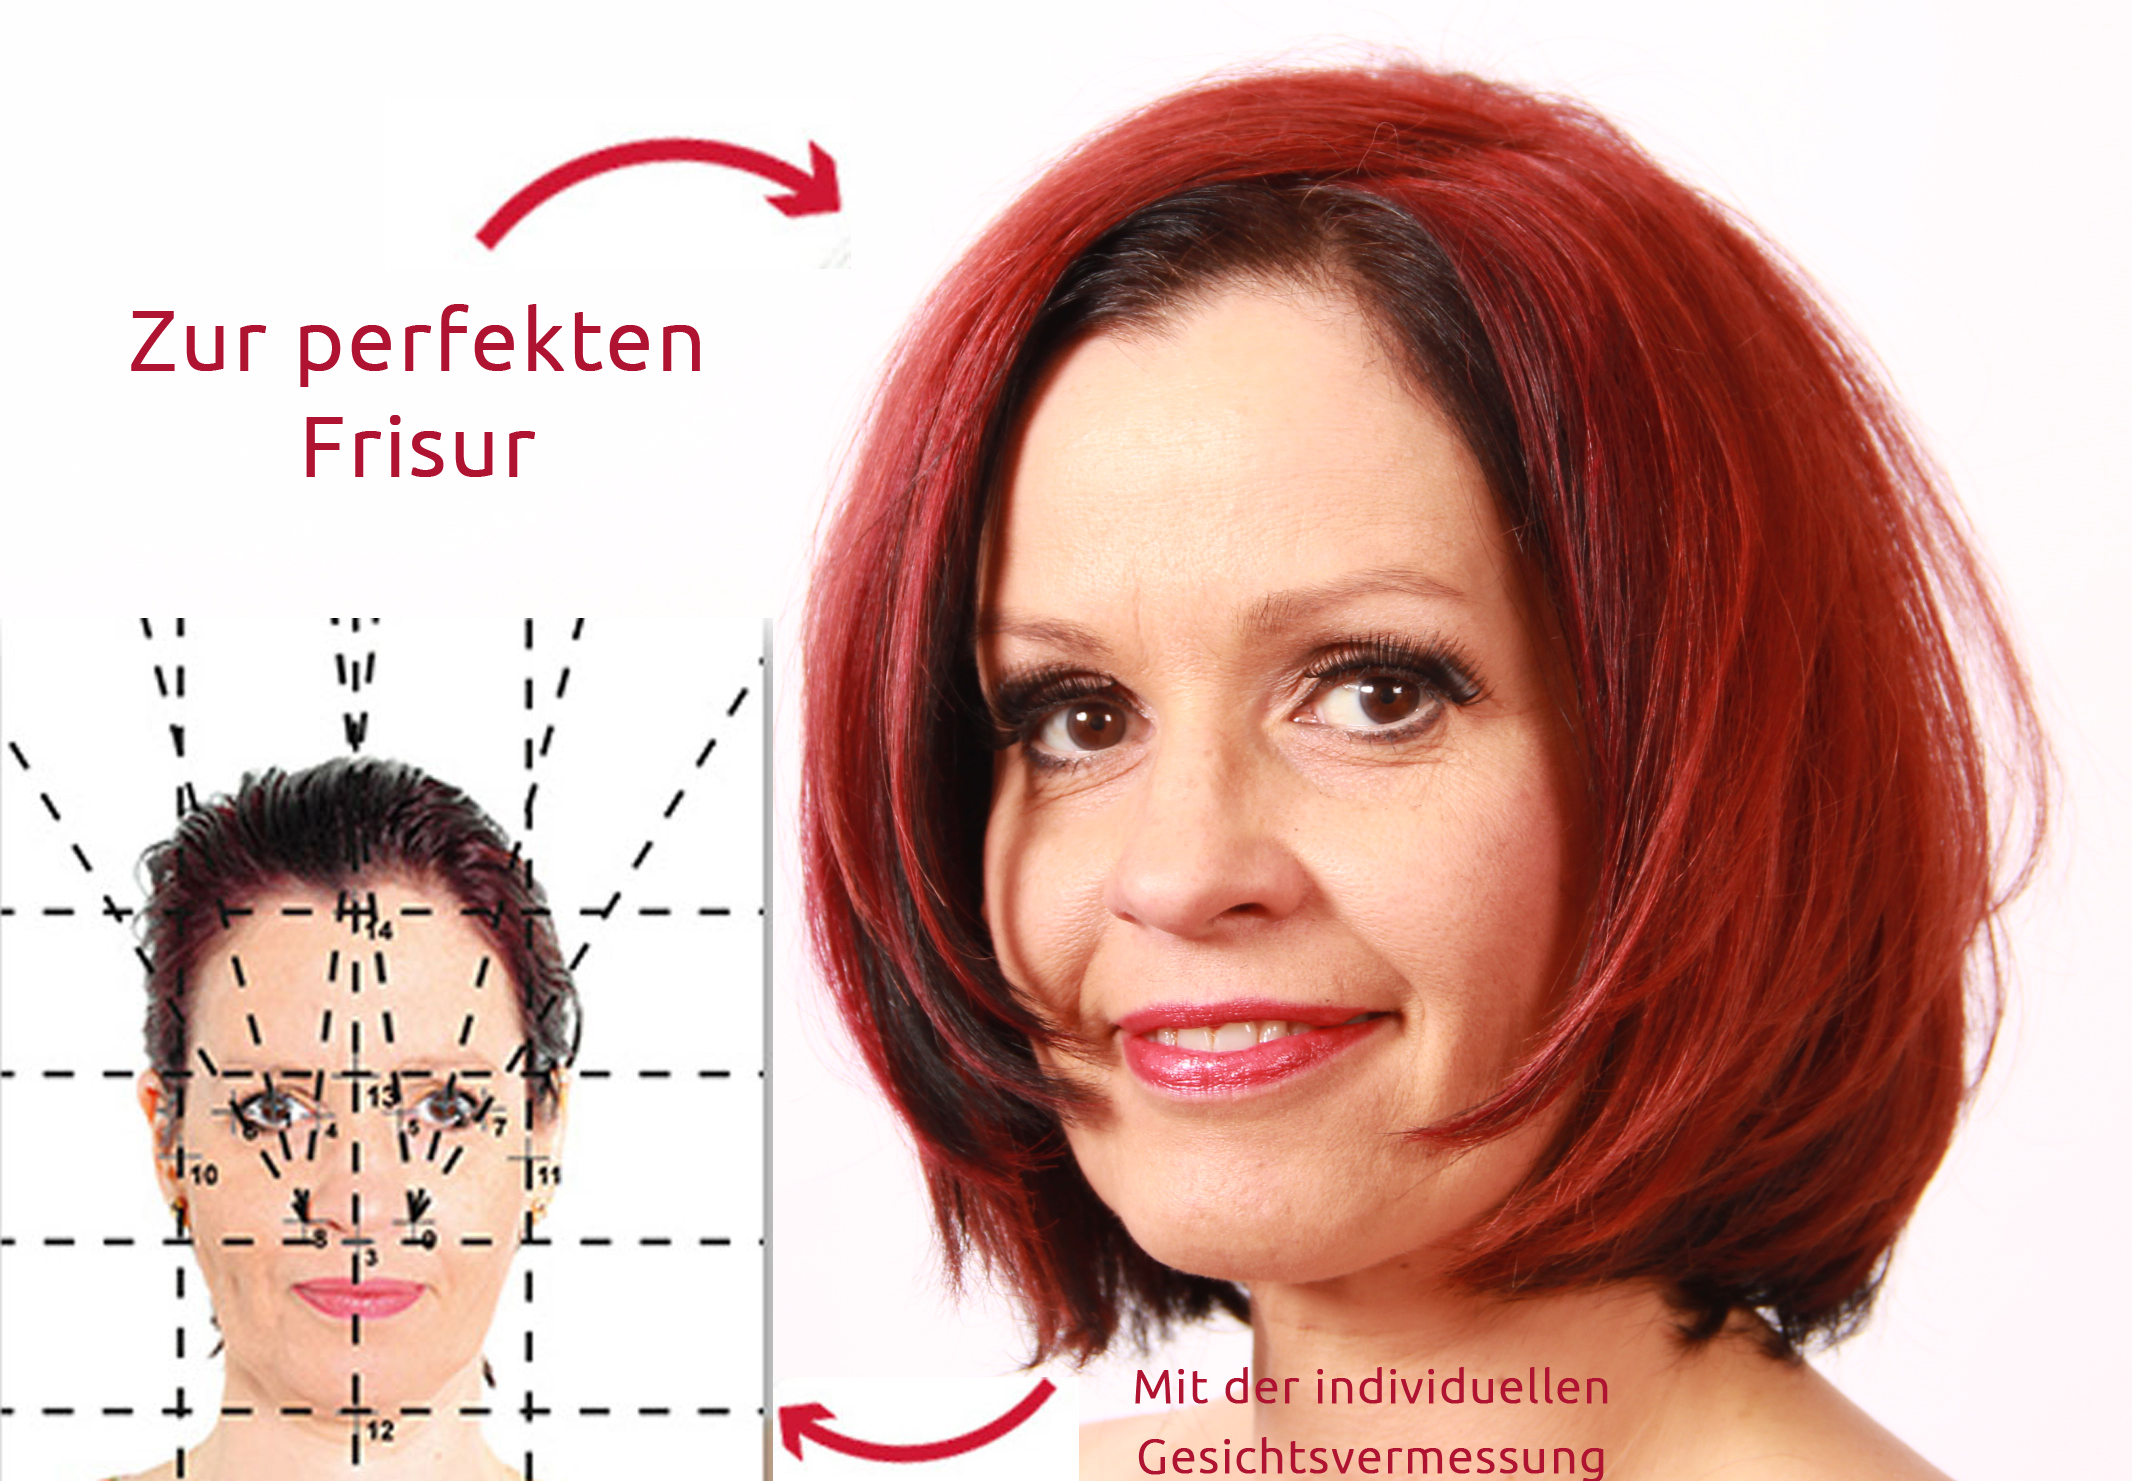 frisuren testen ] 100 images frisuren app welche frisur